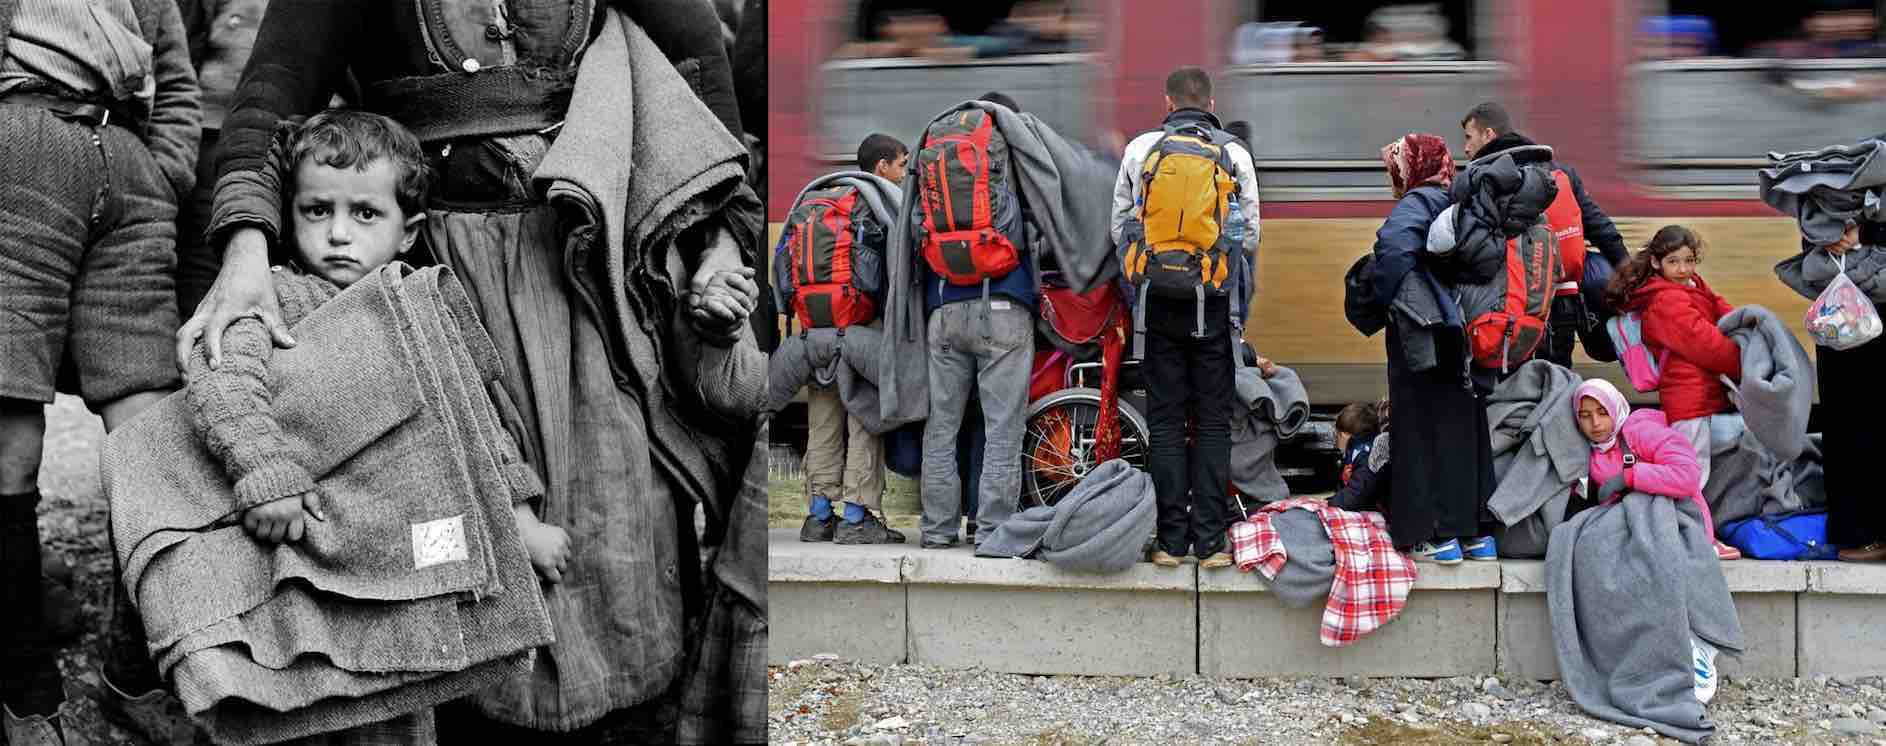 (Left) Circa 1950, in the north-western town of Castoria, Greece, a boy holds a blanket, clutching the skirt of a woman. (Right) In 2015 in the Former Yugoslav Republic of Macedonia, refugees stand on the train platform outside a transit centre, on their